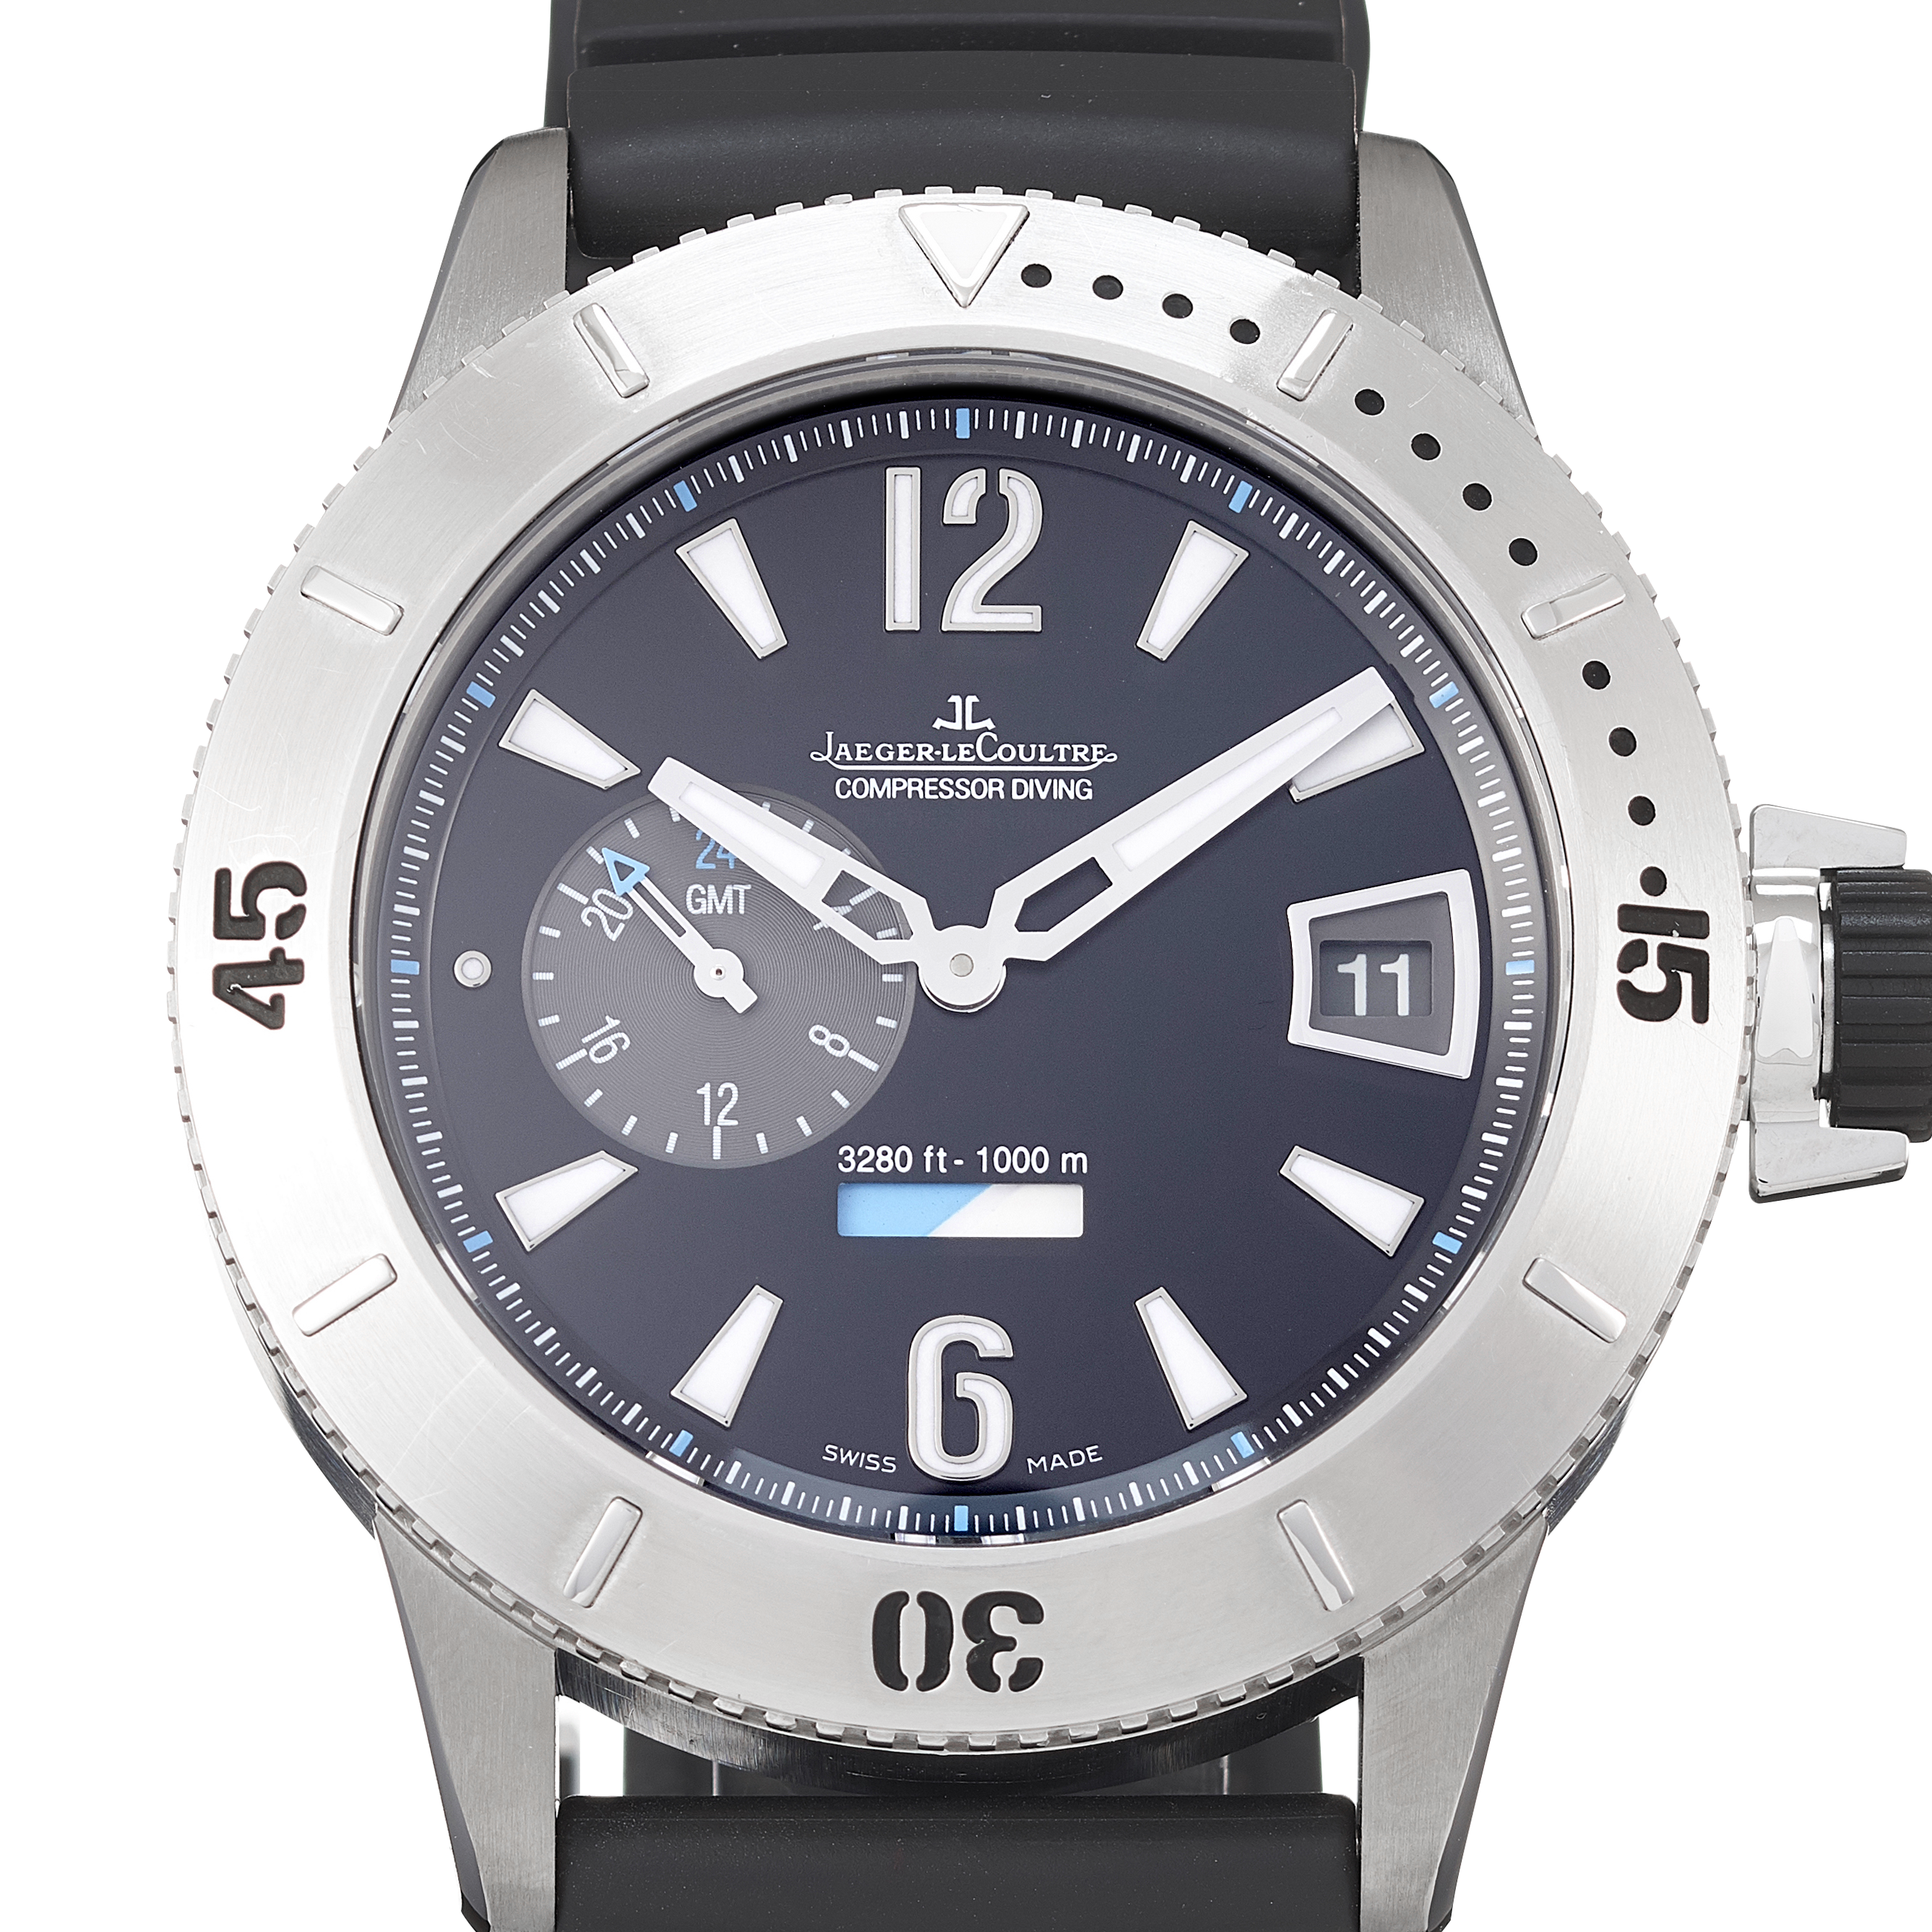 Jaeger-LeCoultre Master Compressor Diving GMT Stainless Steel - 159.T.05